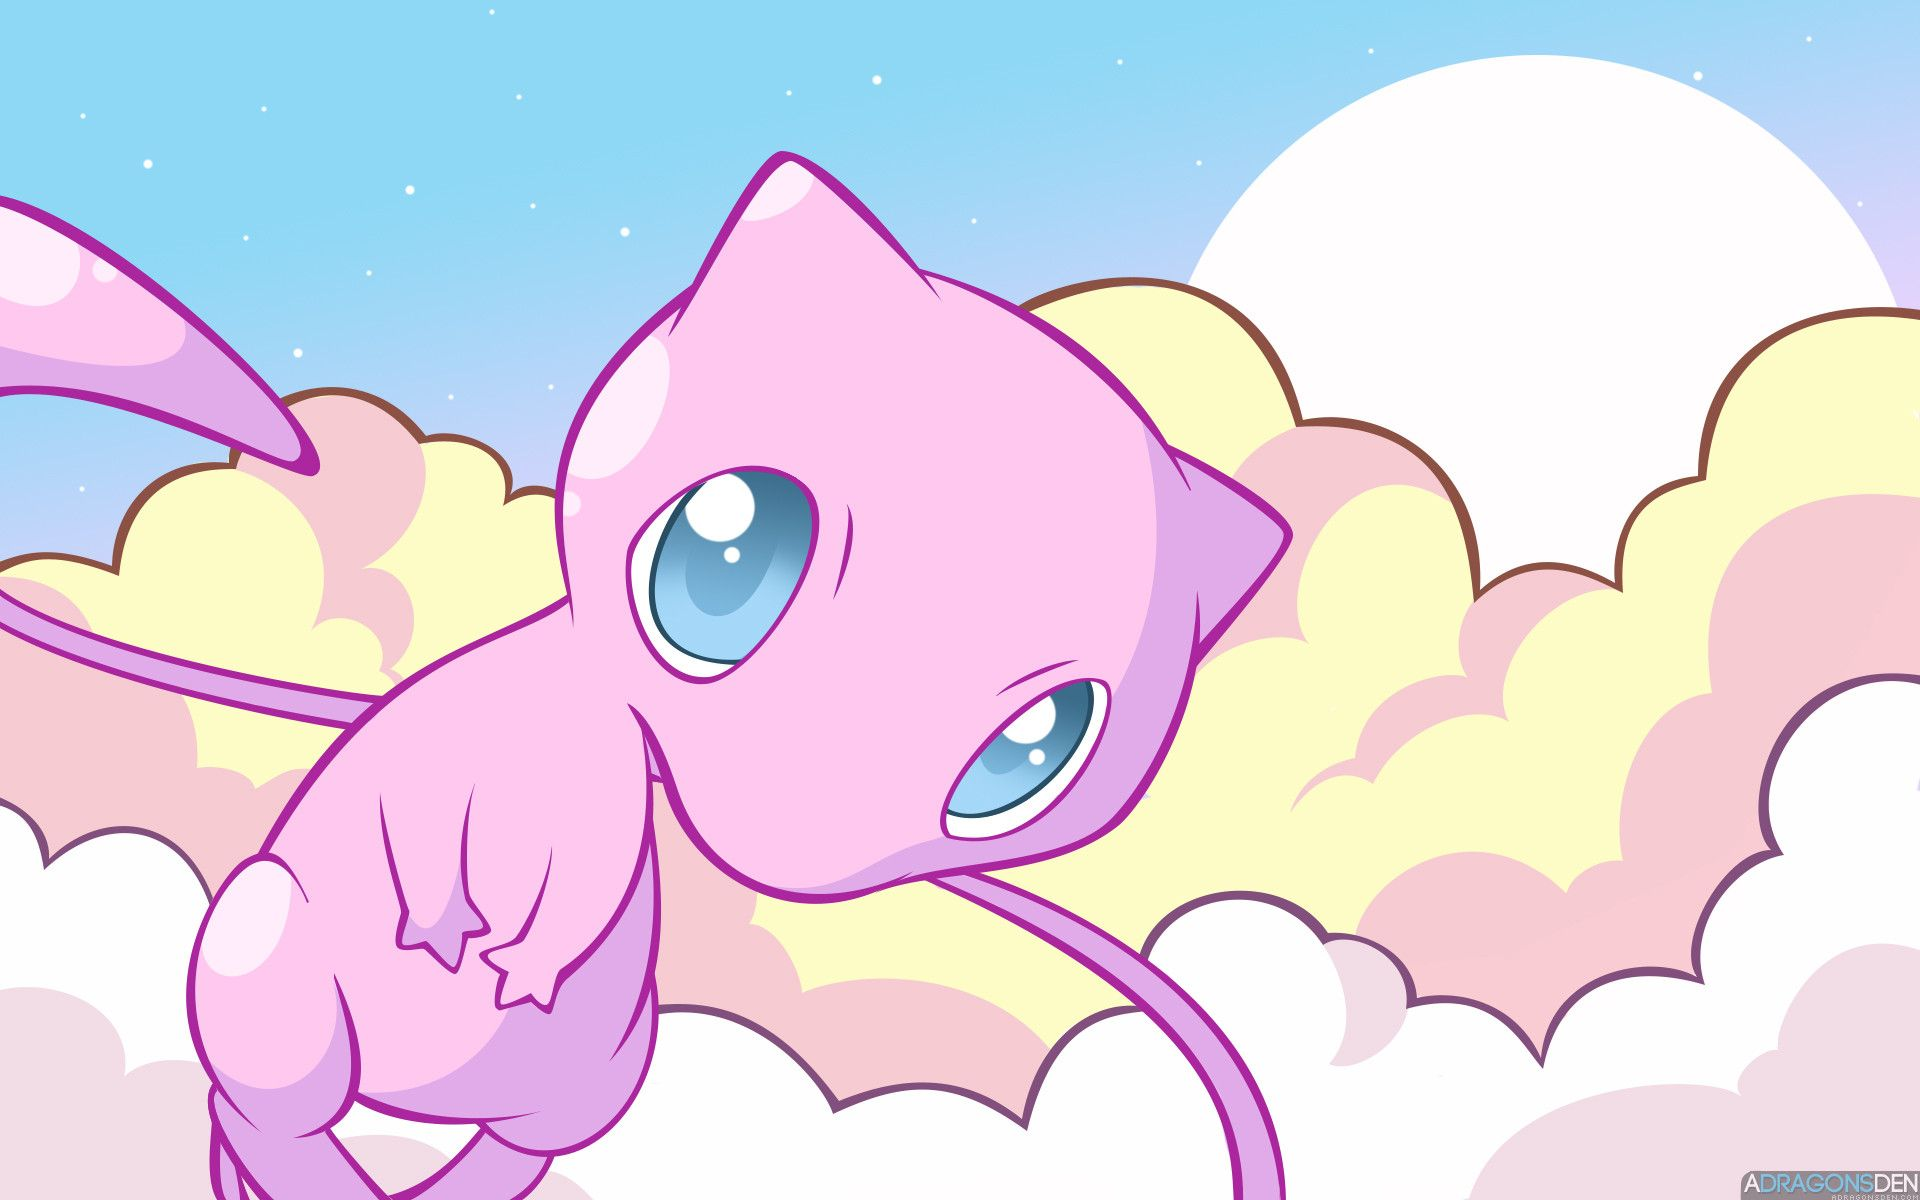 Mew The Pokemon Images In Clouds HD Wallpaper And Background Photos